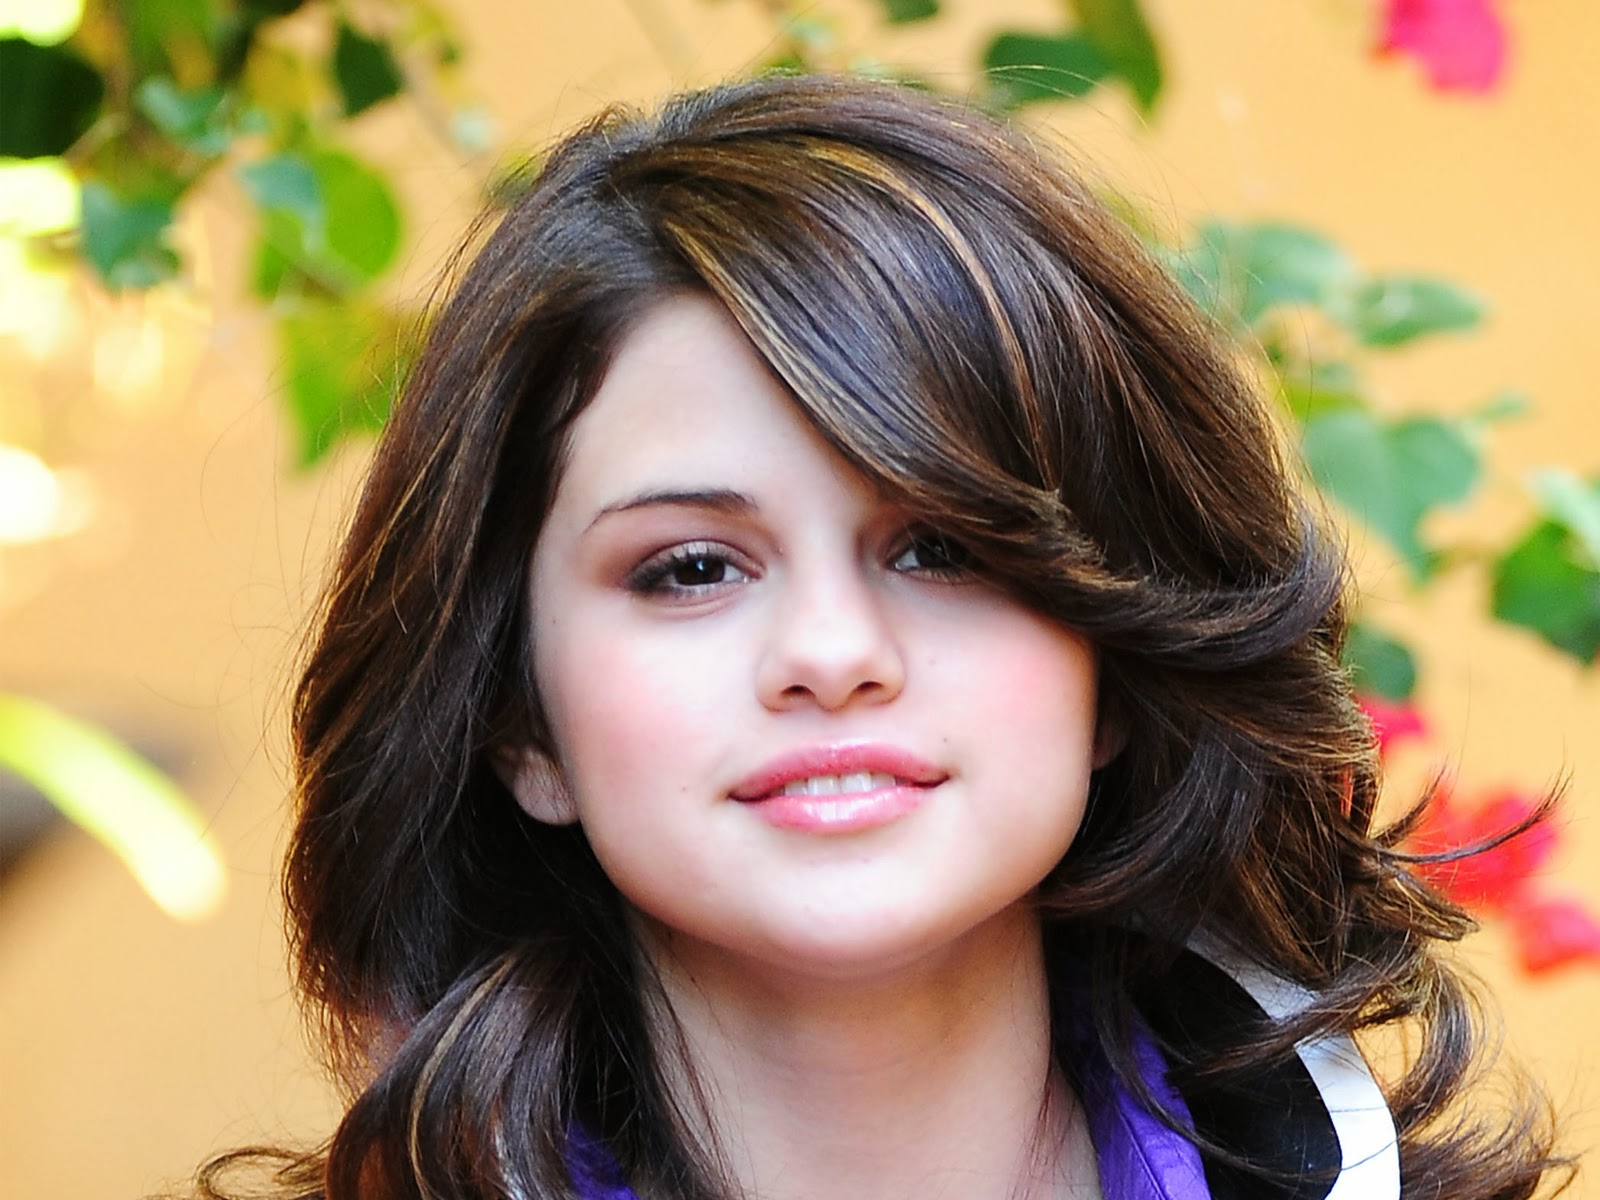 hd pictures selena gomez hd pictures selena gomez hd pictures